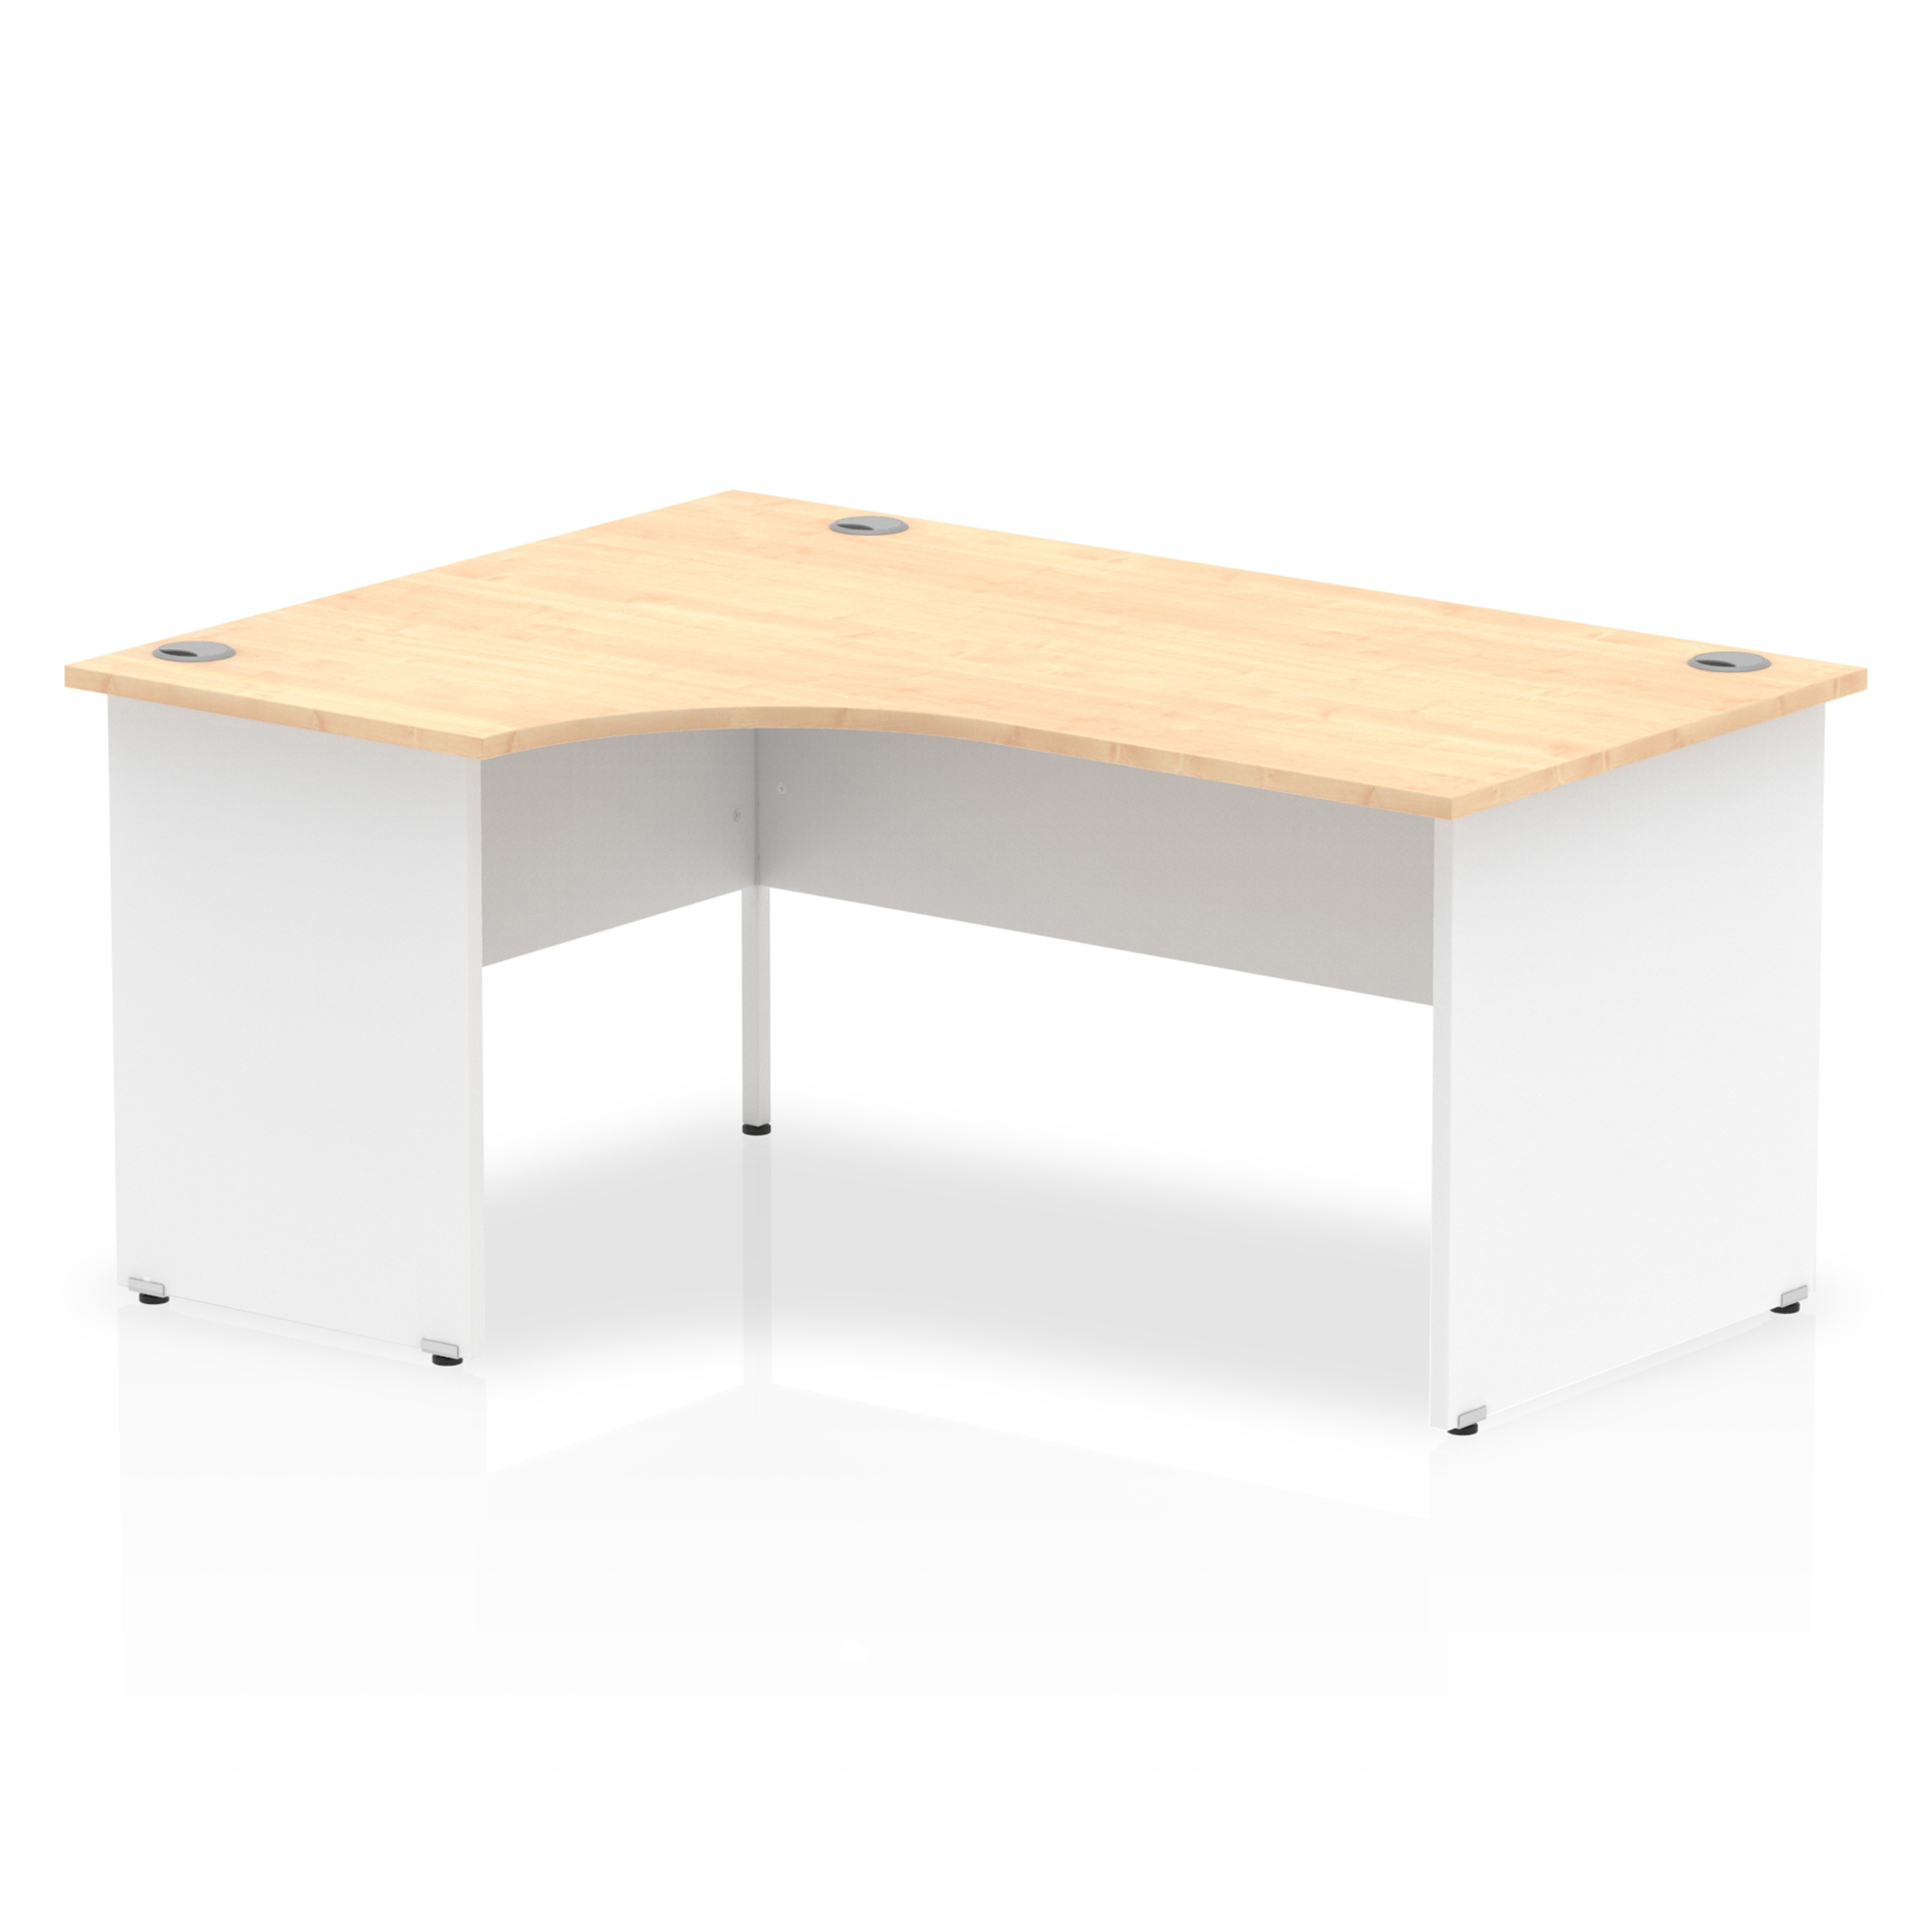 Trexus Desk Radial Left Hand Panel End 1600x800mm Maple Top White Panels Ref TT000113